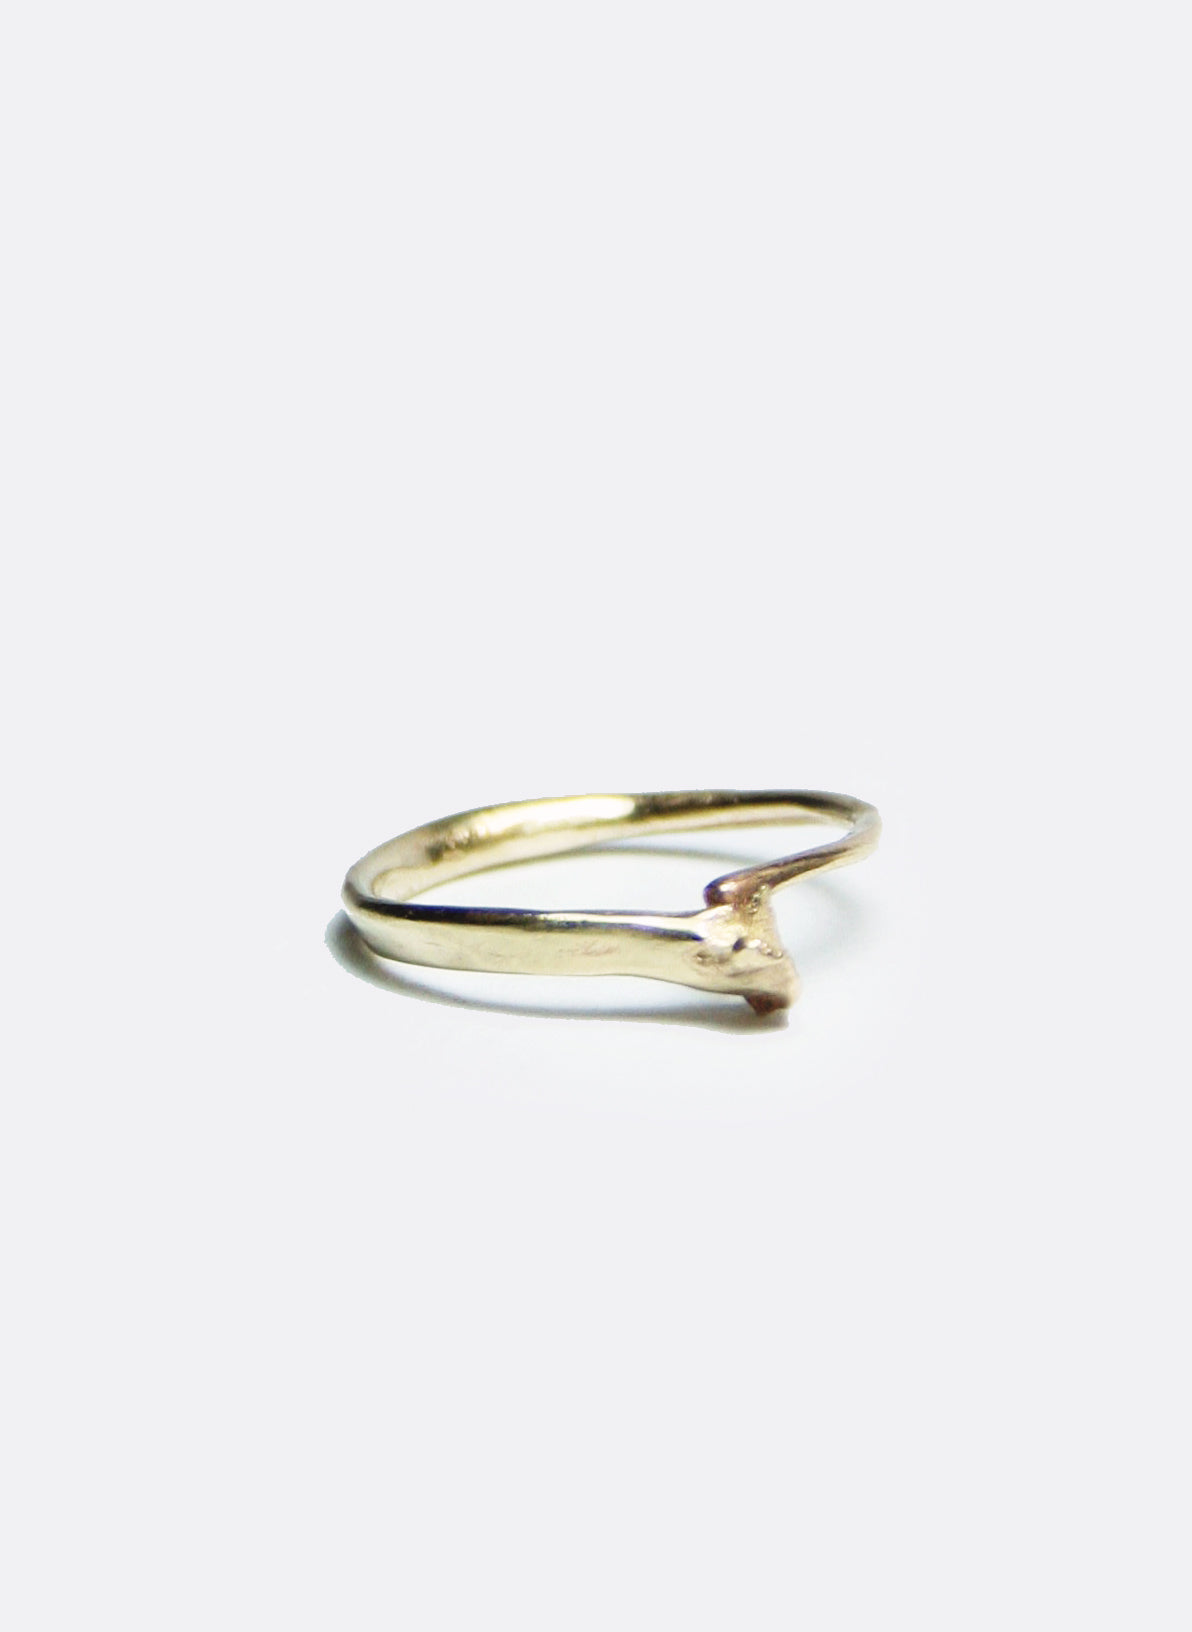 Snake Bone Ring Silver or Gold